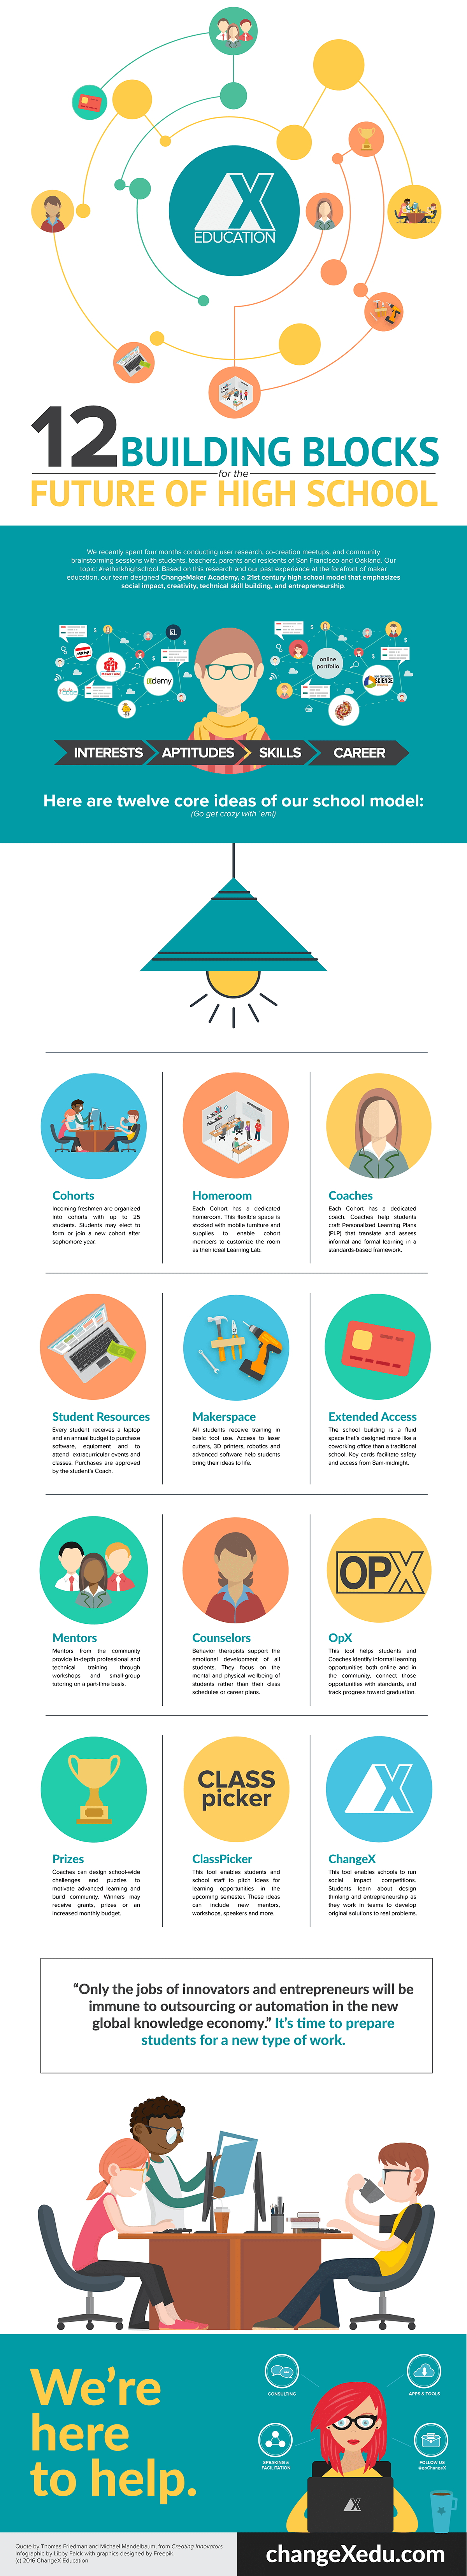 12 Building Blocks for the Future of High School Infographic